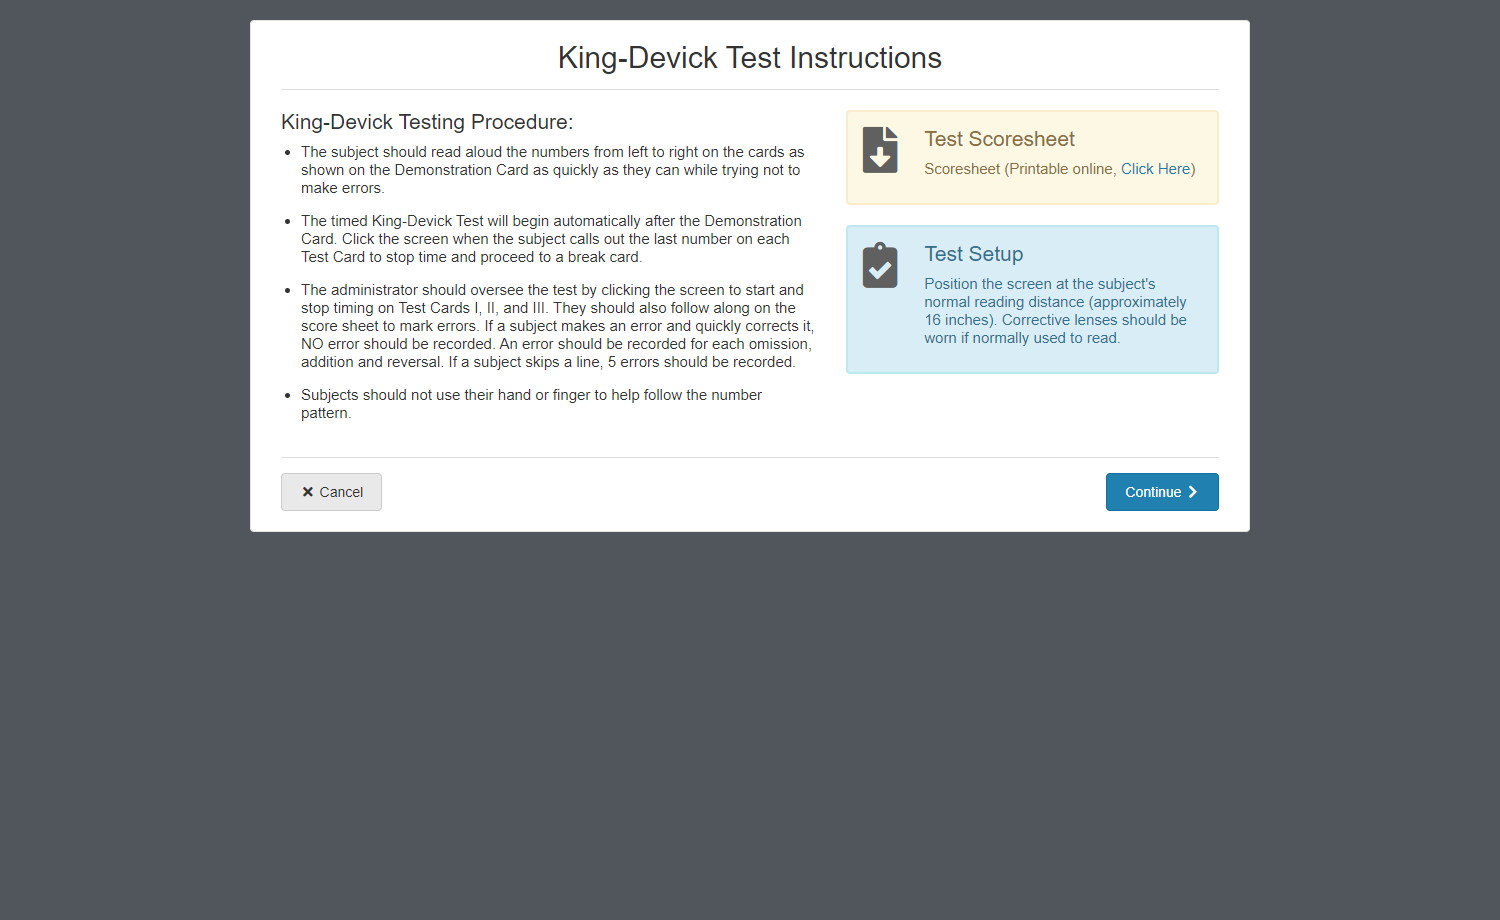 K-D test instructions